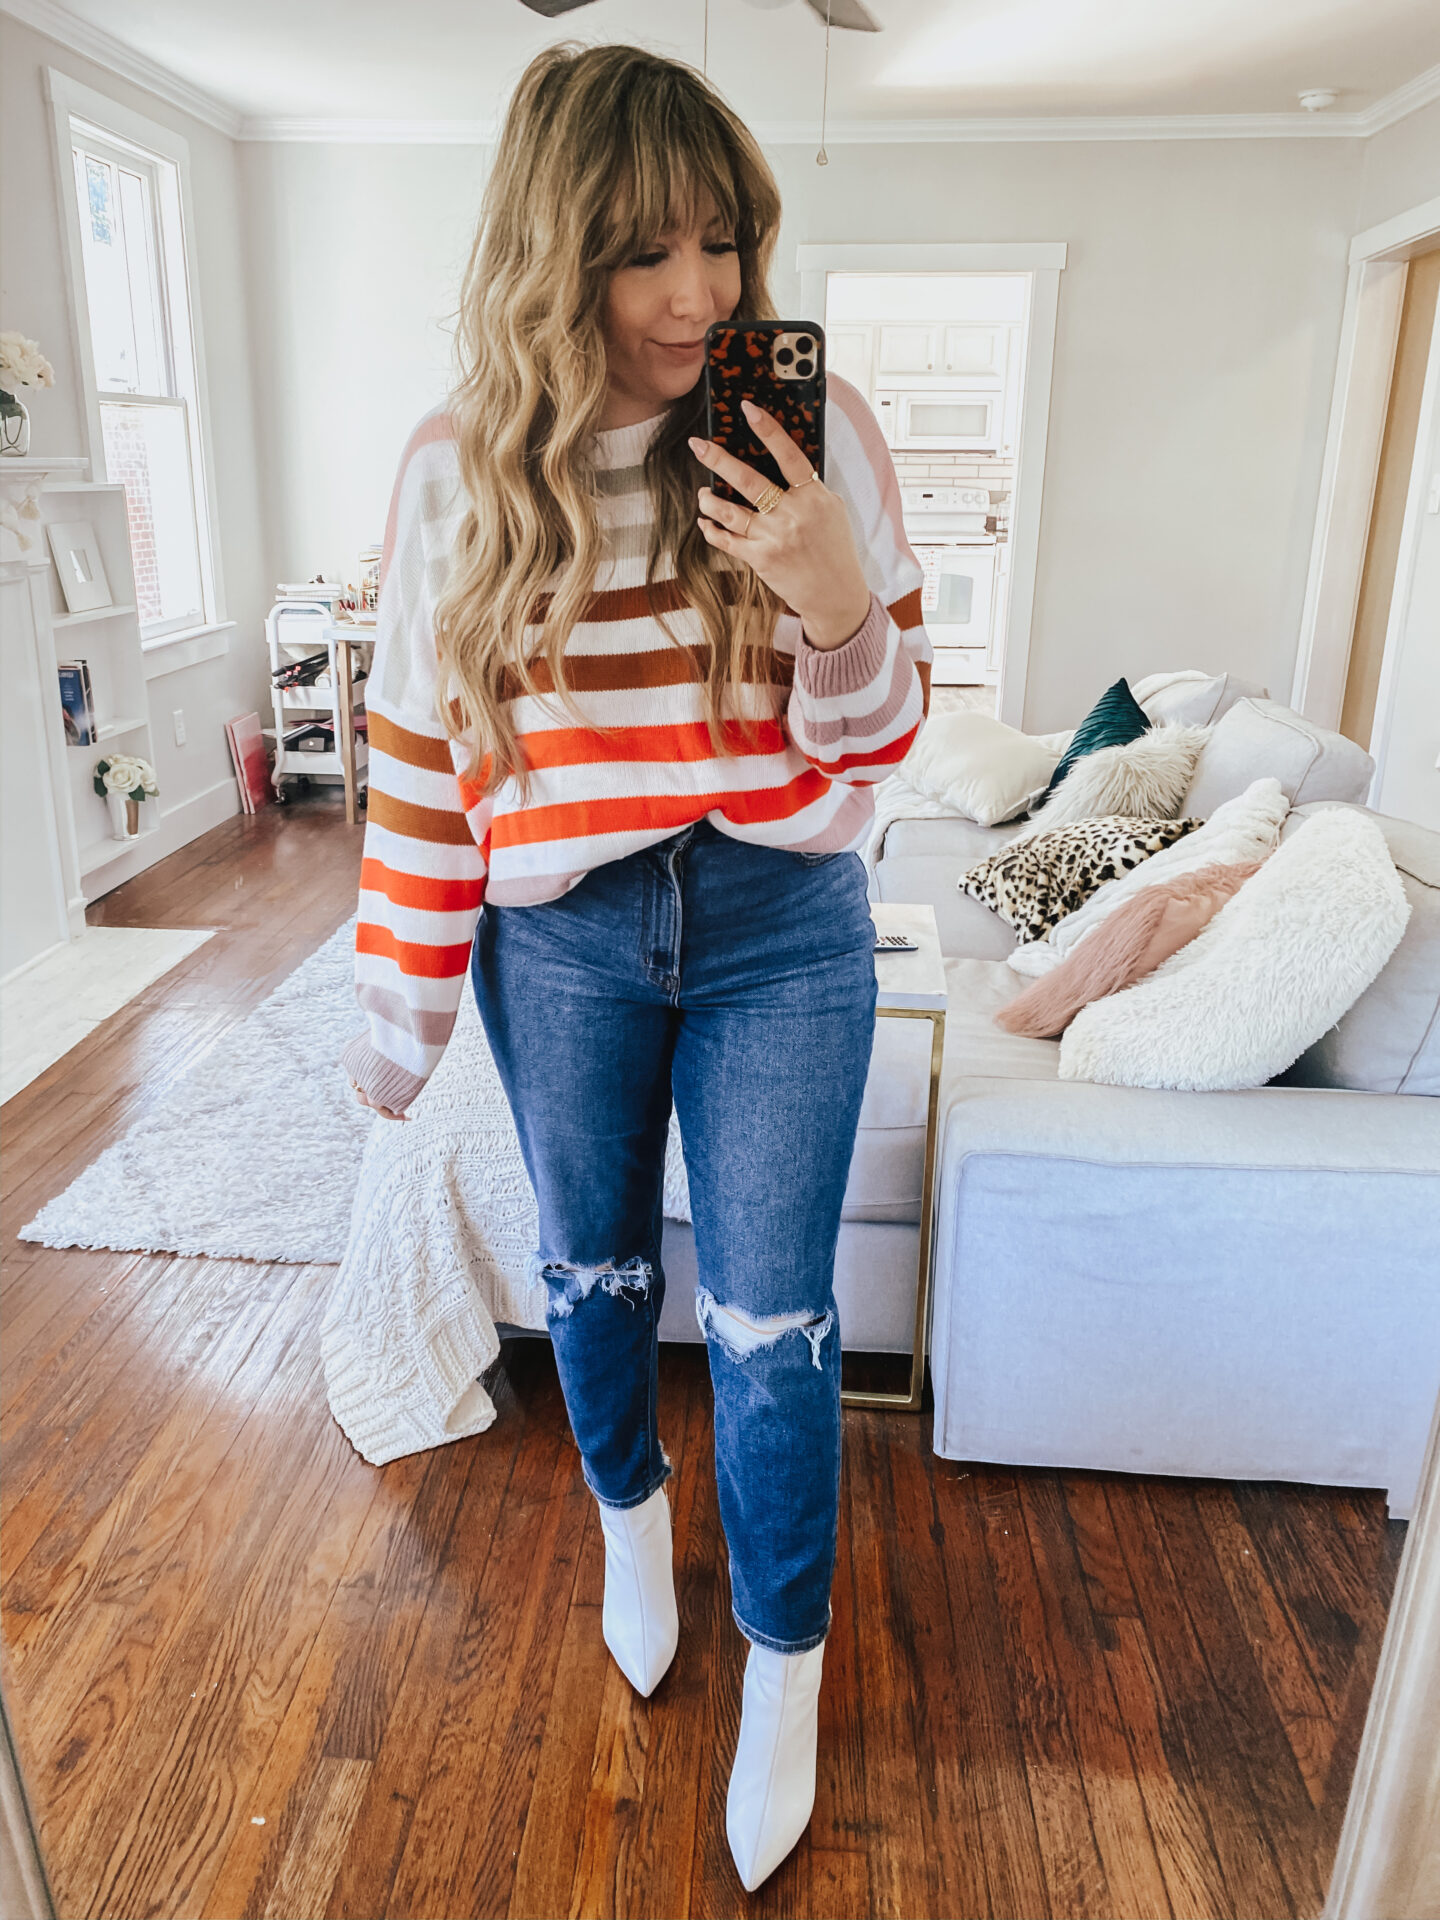 Amazon Sweater Haul - Striped Amazon Sweater